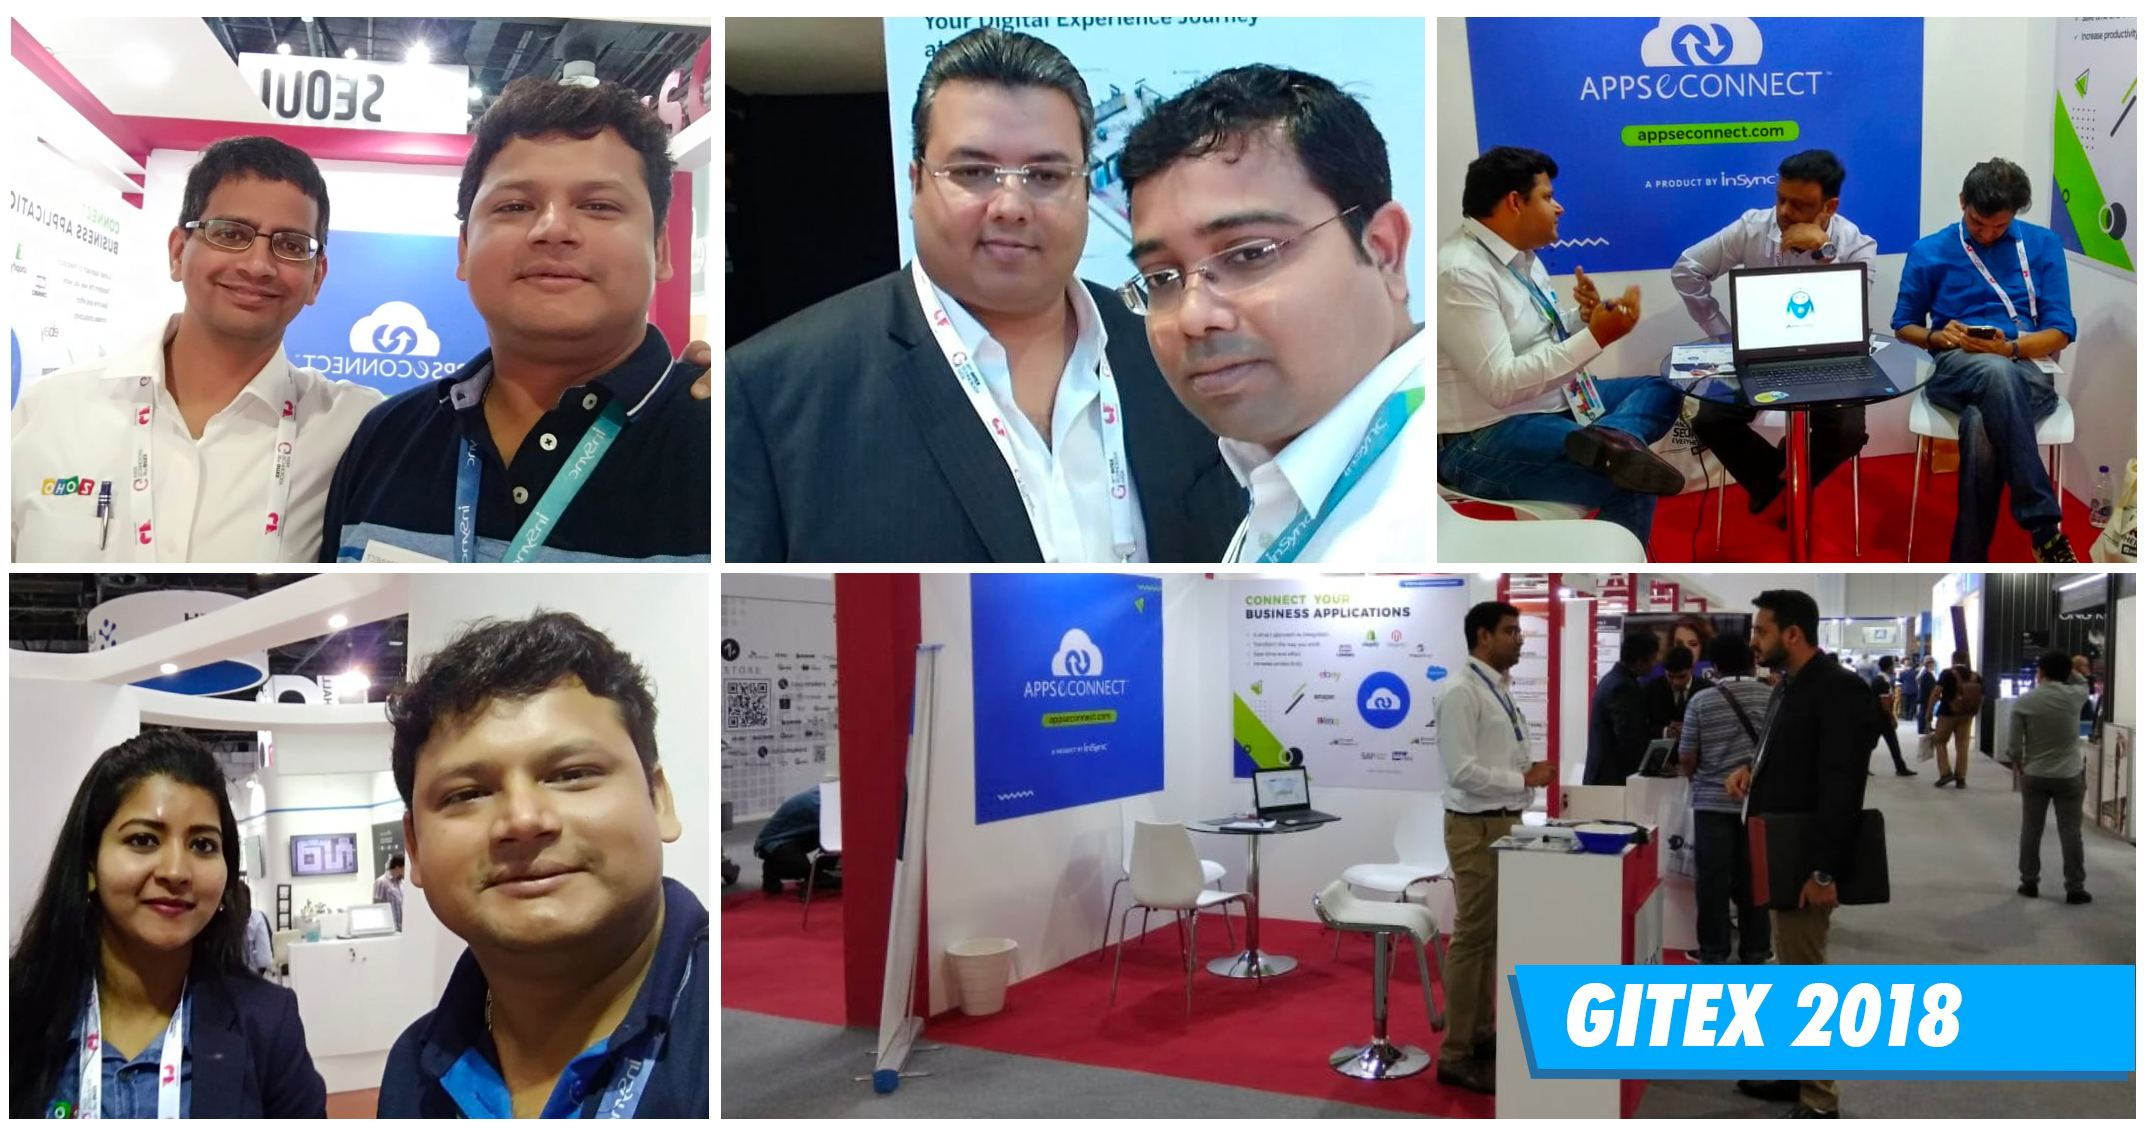 APPSeCONNECT-at-GITEX-2018